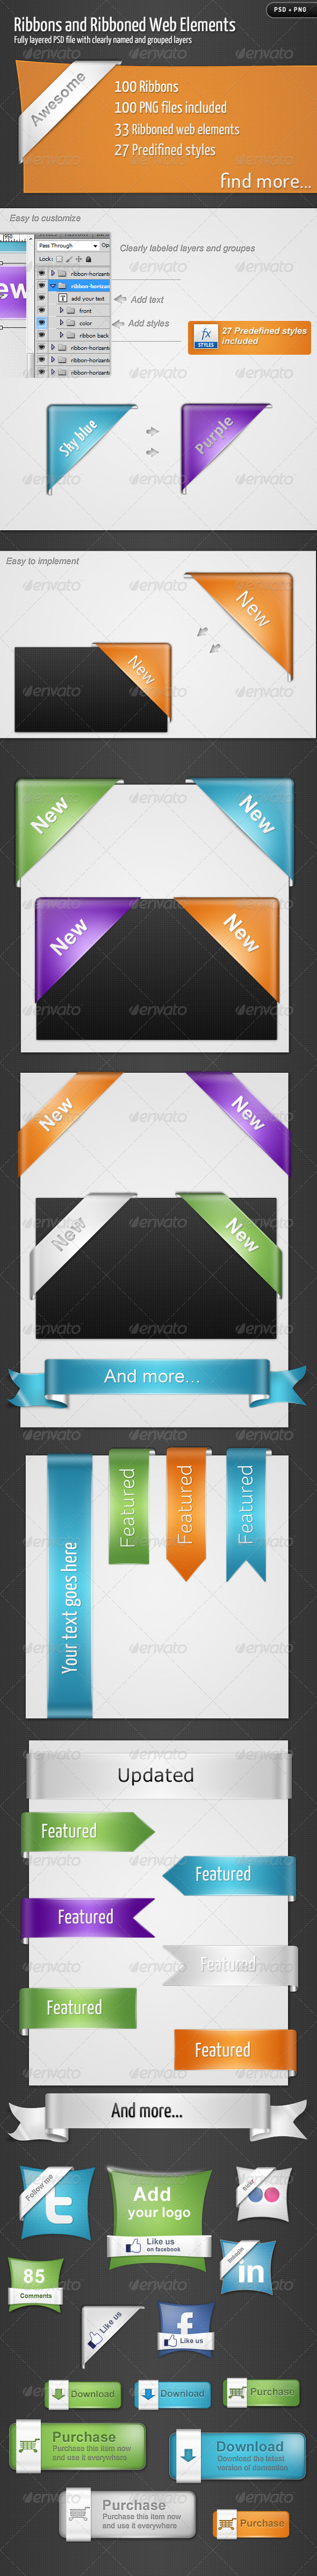 GraphicRiver Ribbons and Ribboned Web Elements 308007